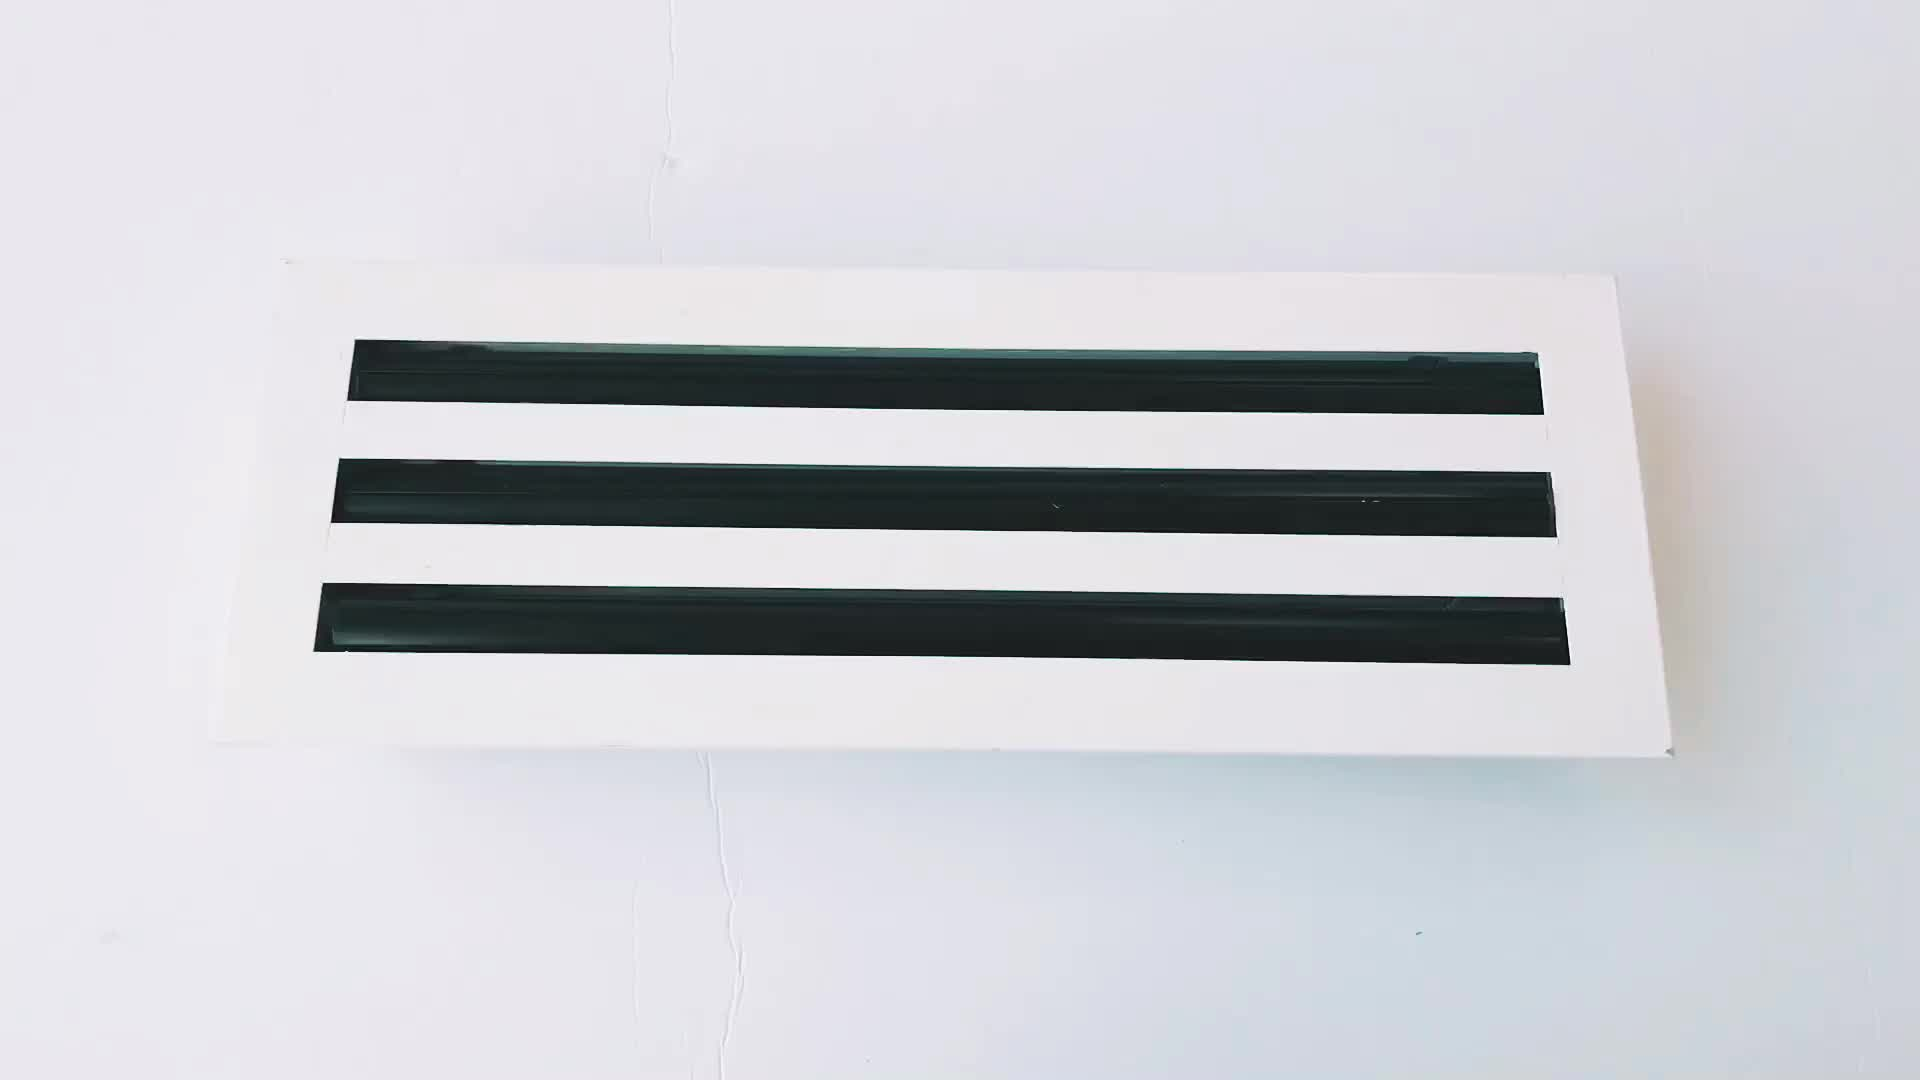 HVAC Ventilation Air Conditioning Aluminum Linear Slot Diffuser